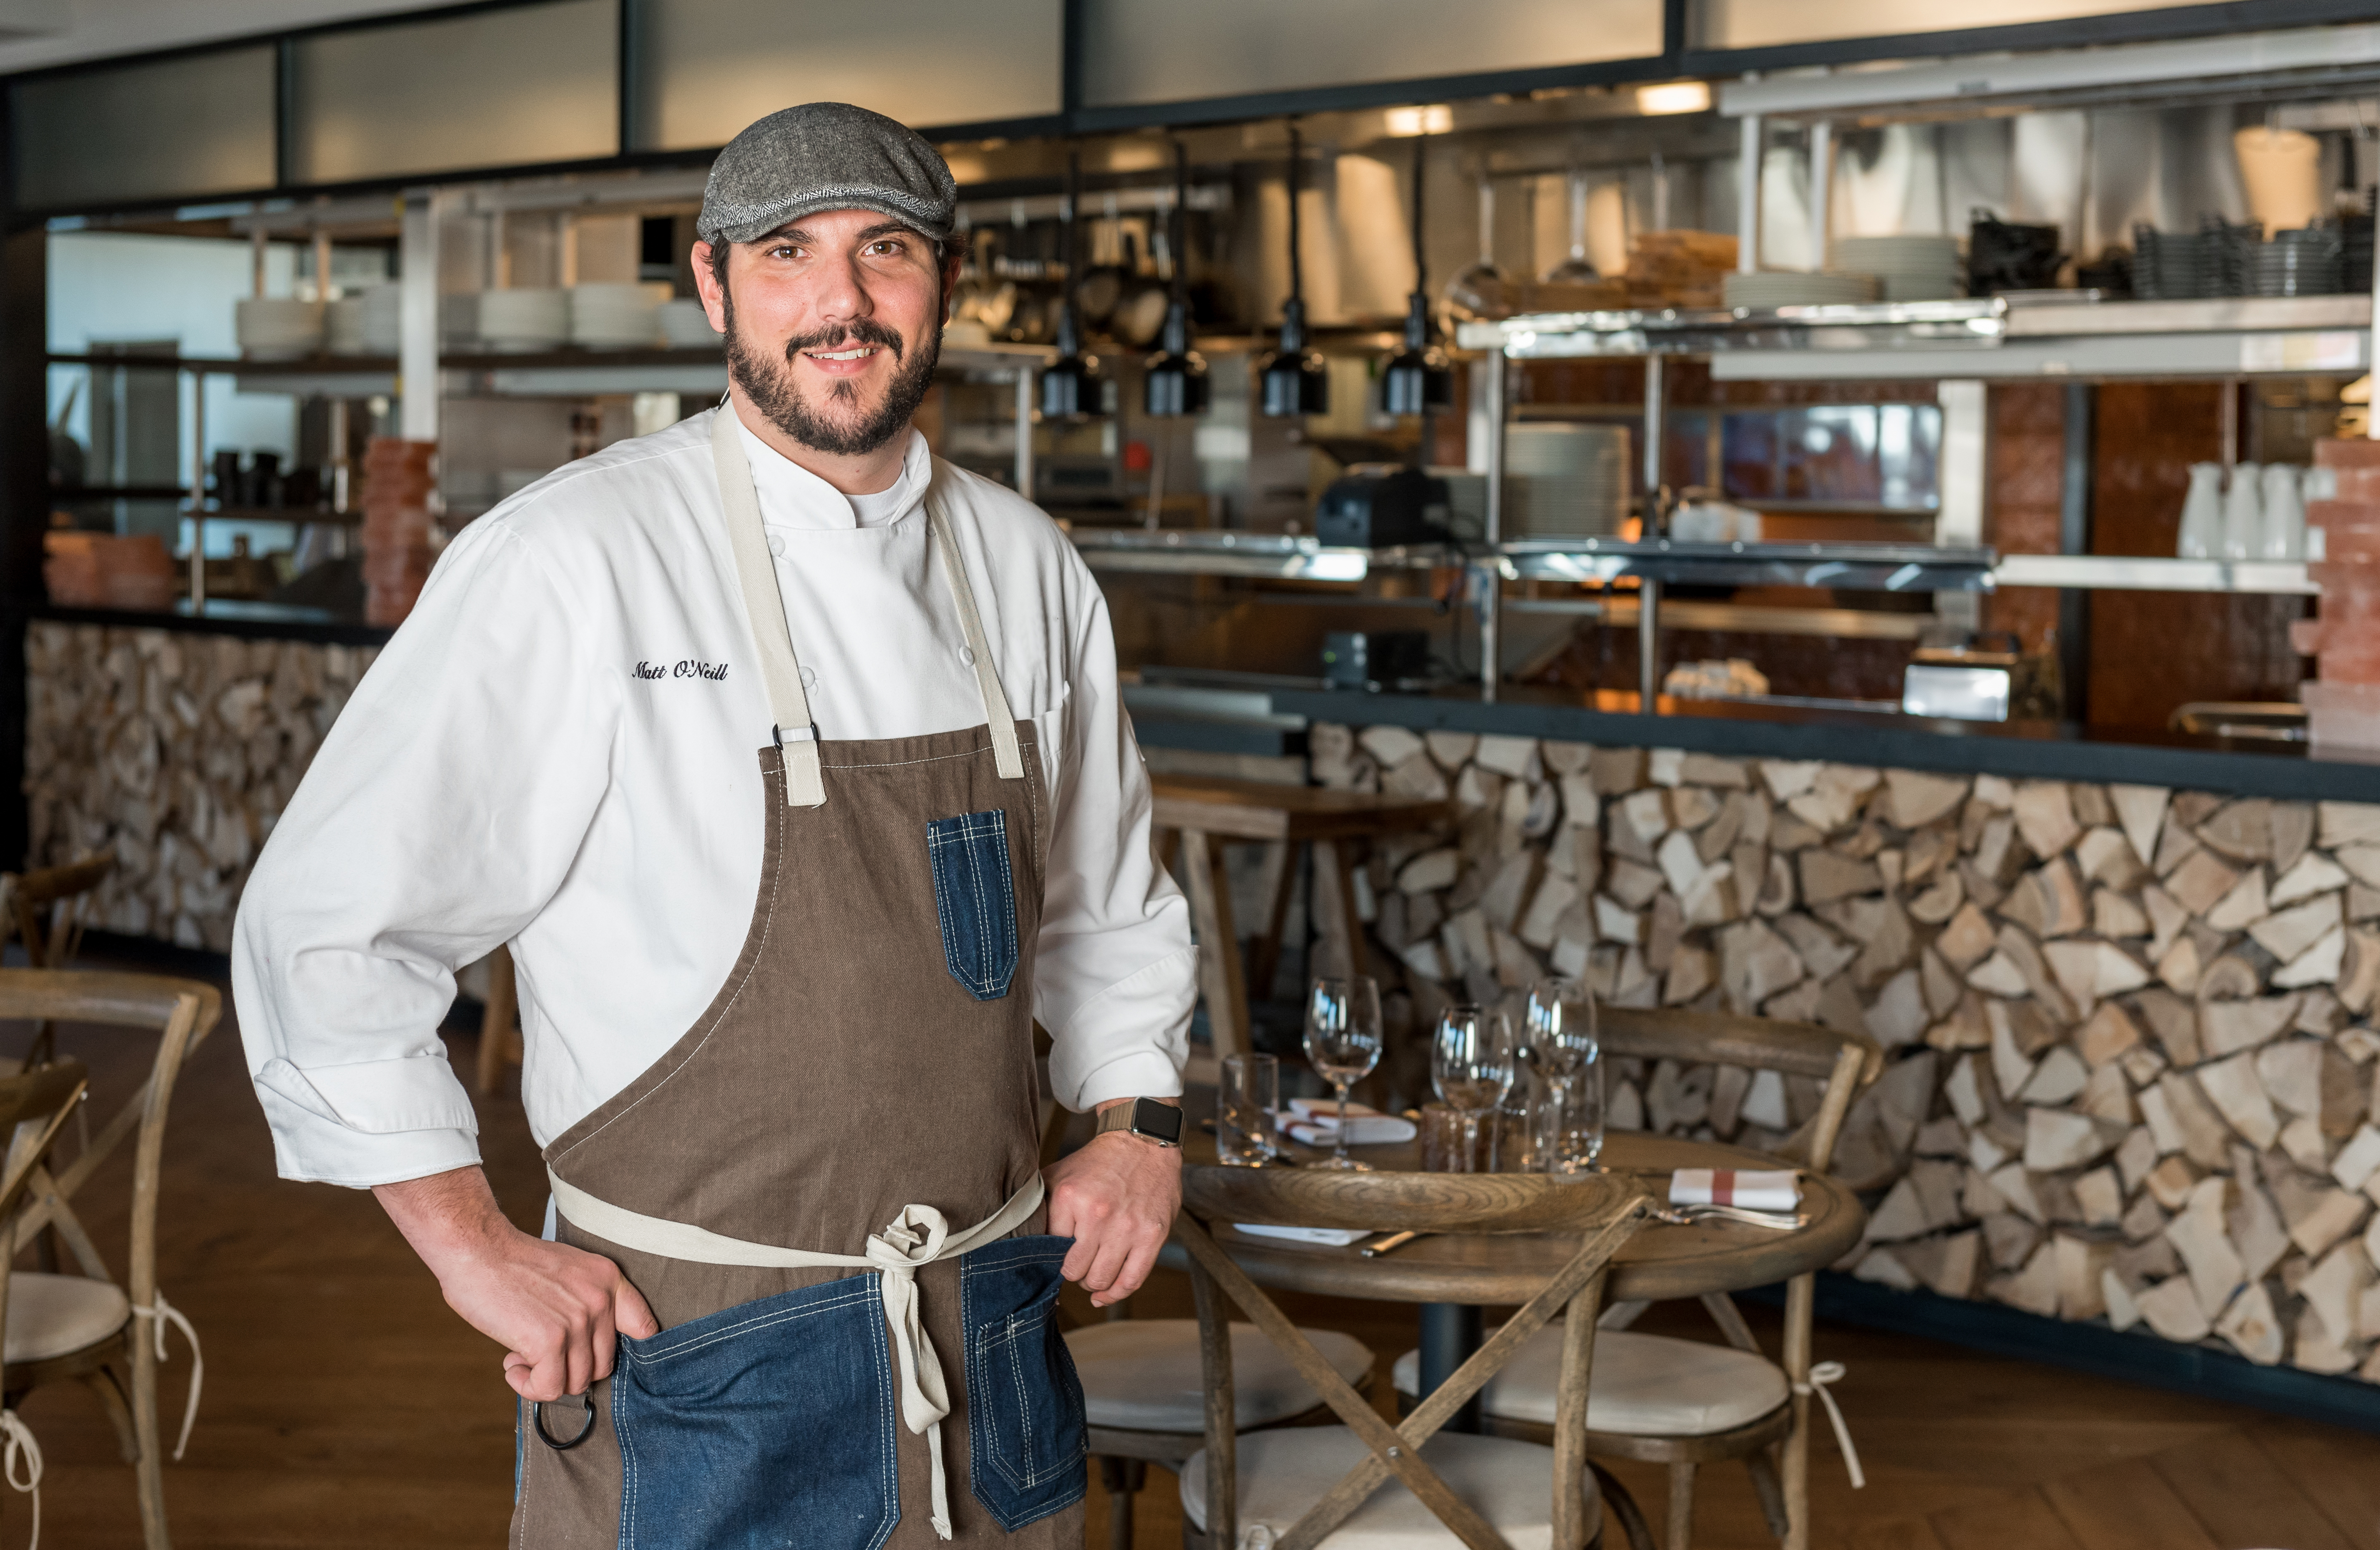 A white man in a white chef's coat stands in front of an open kitchen.